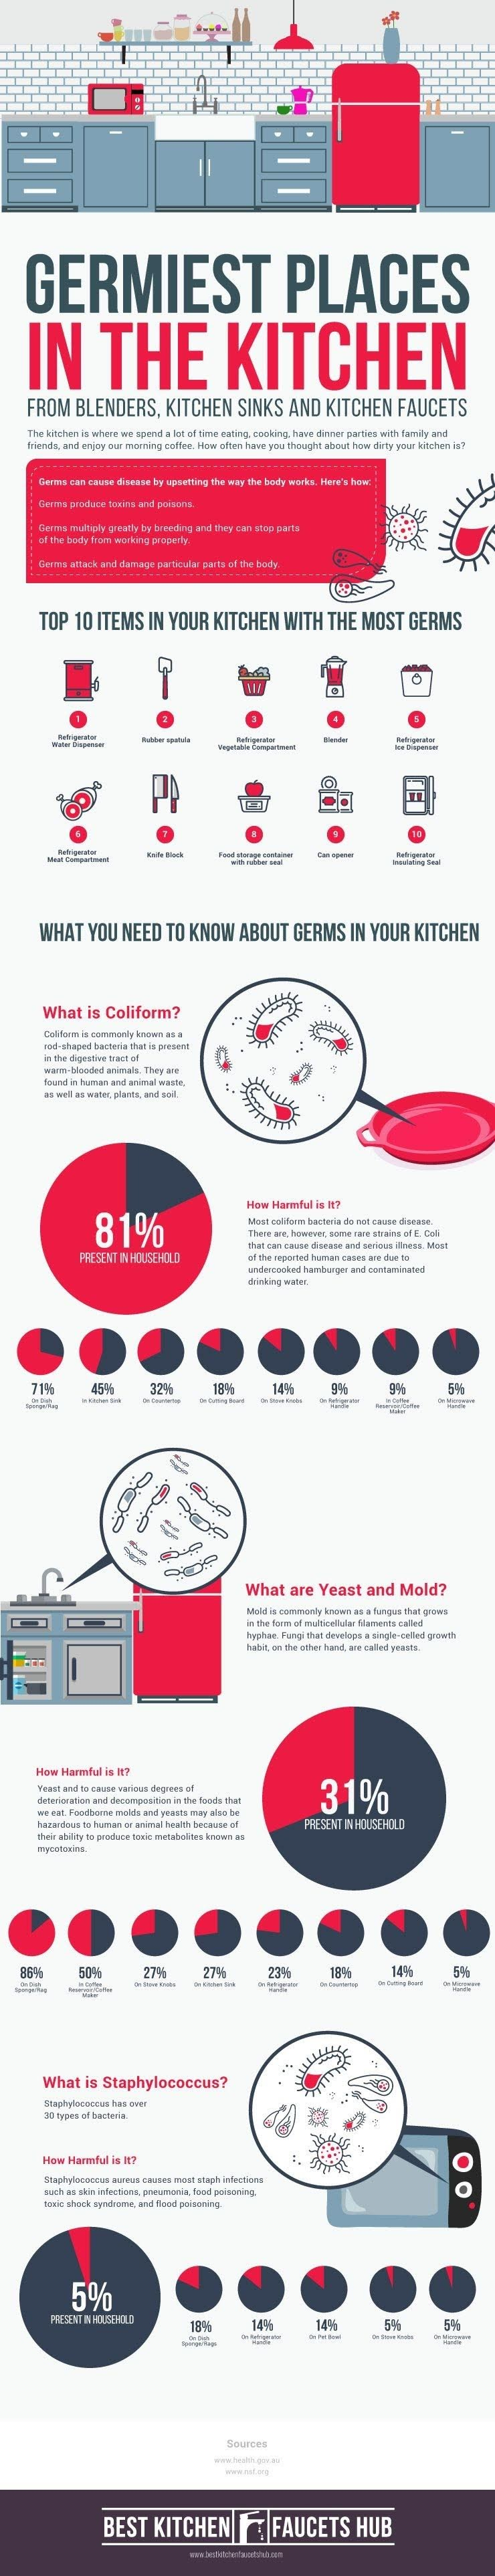 The most fancy places in your kitchen #infographic